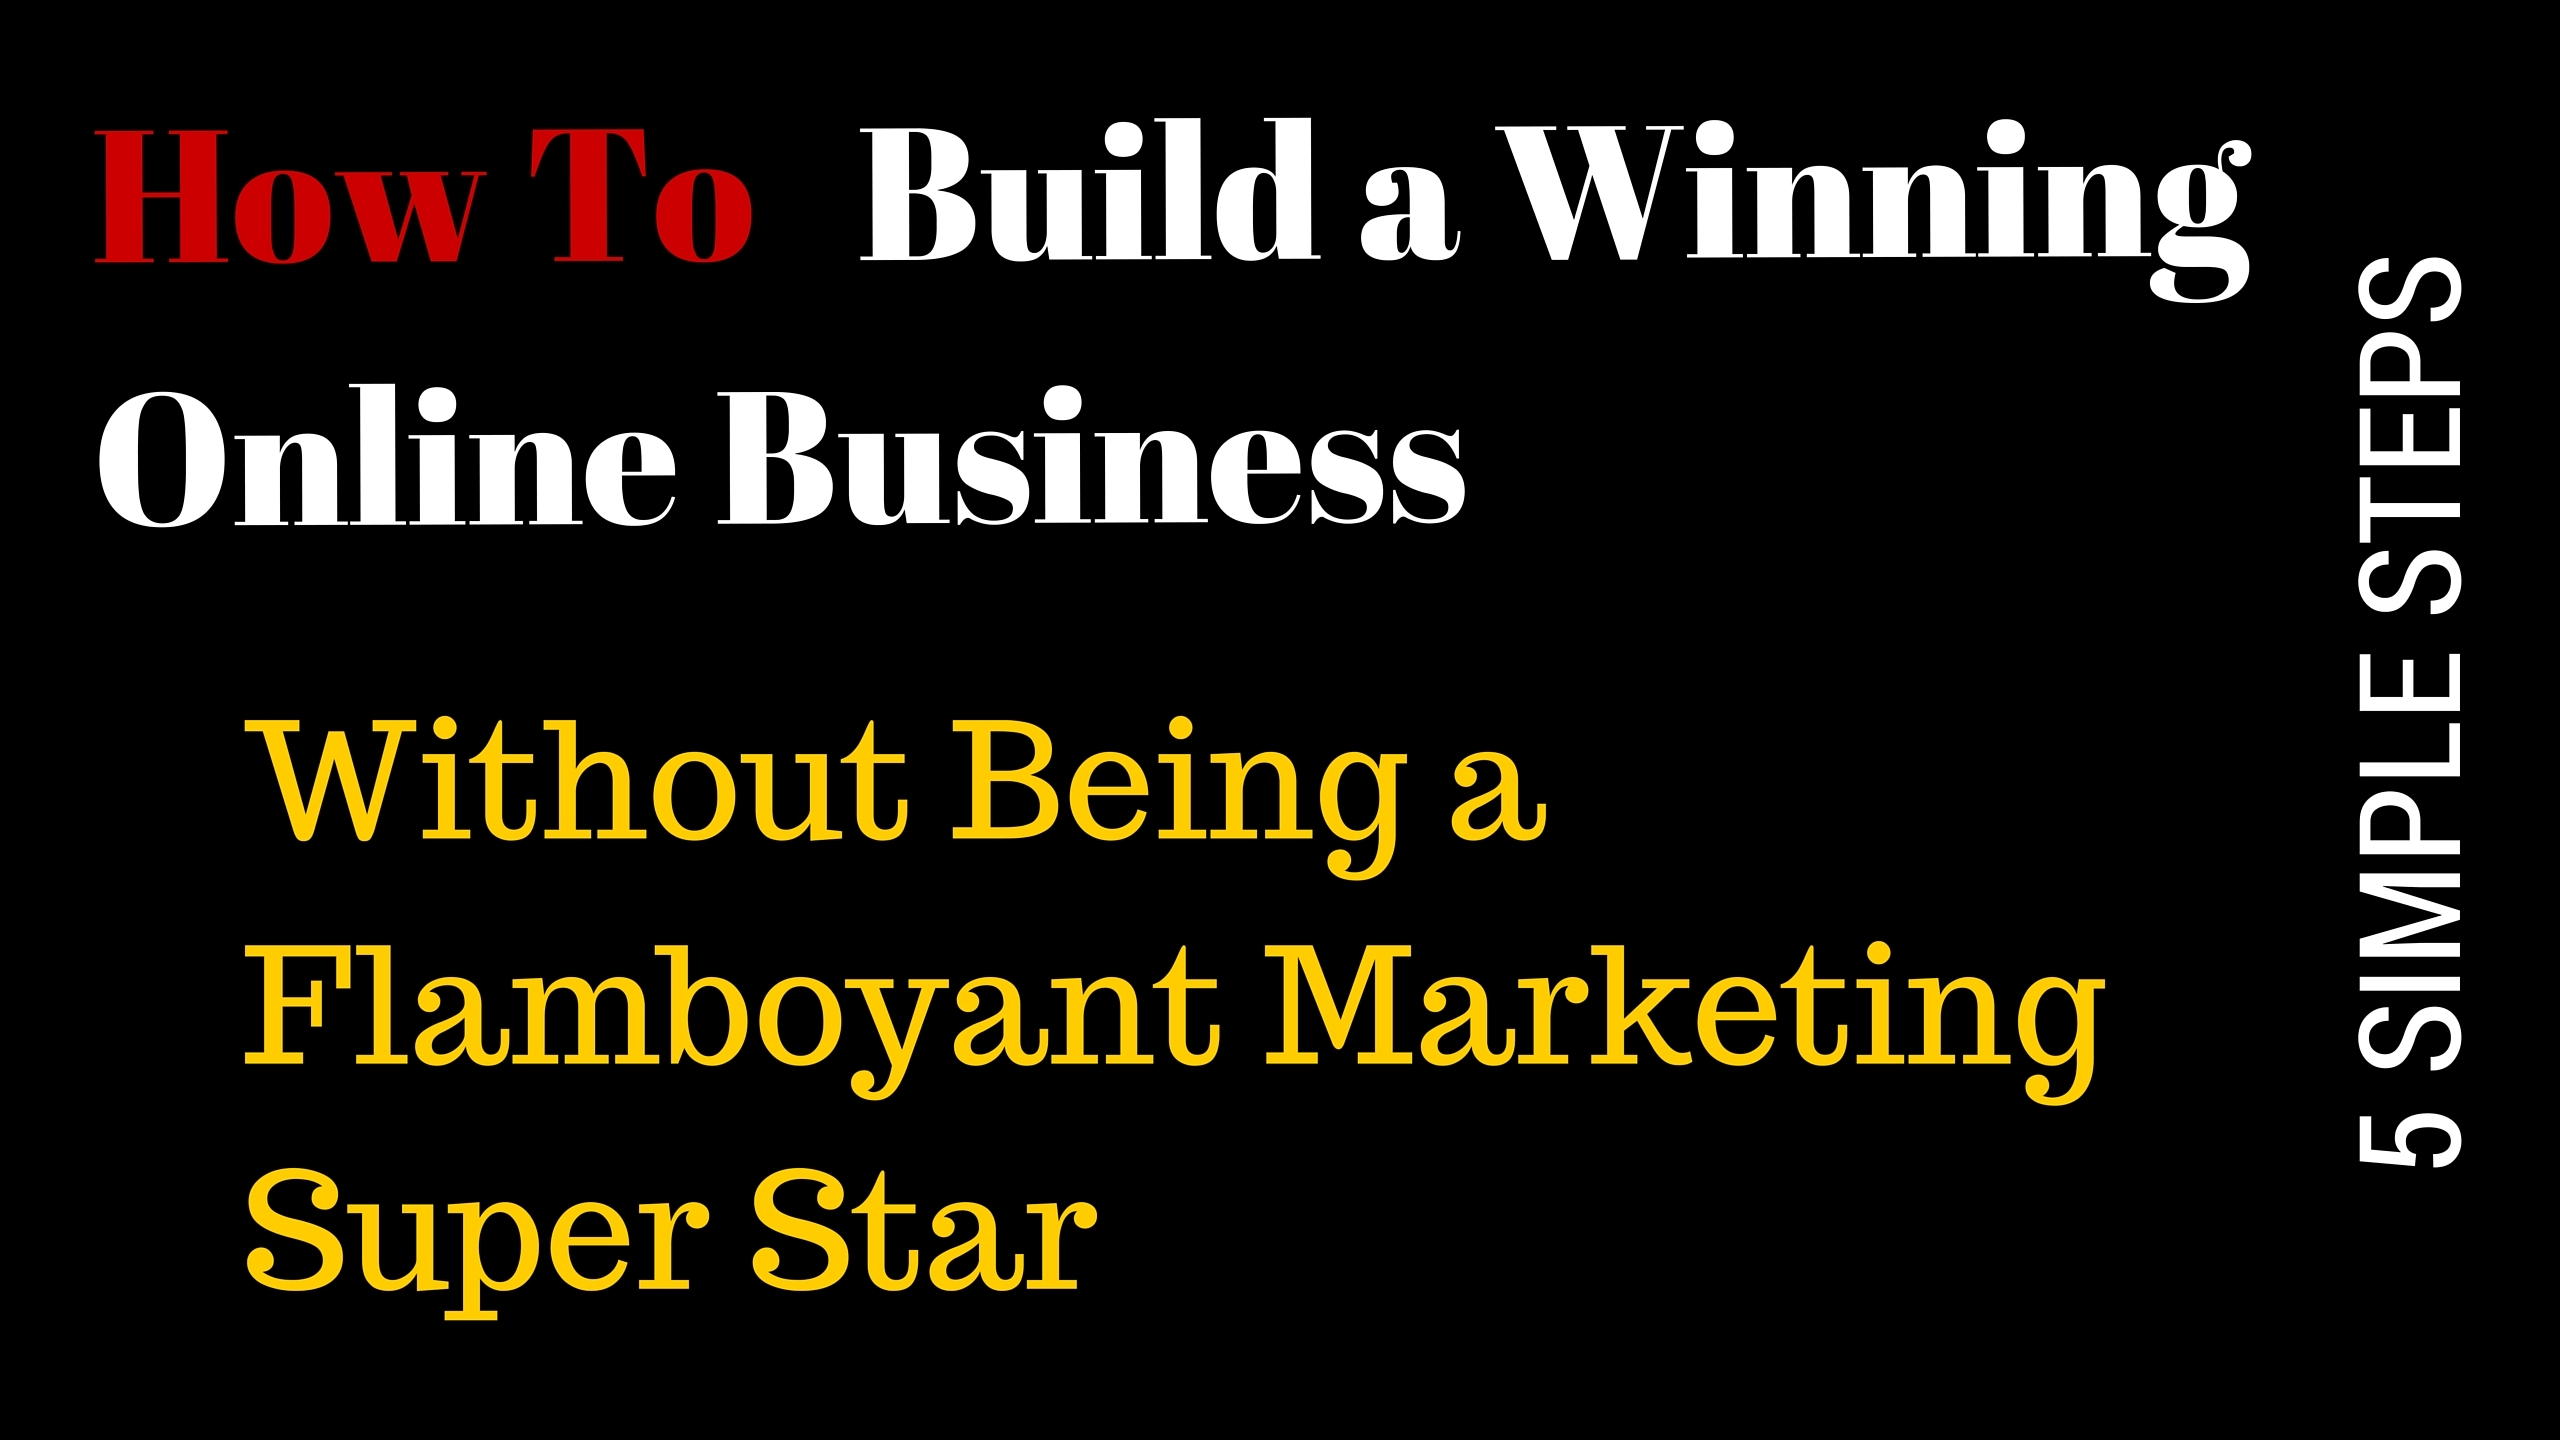 Build Winning Online Business